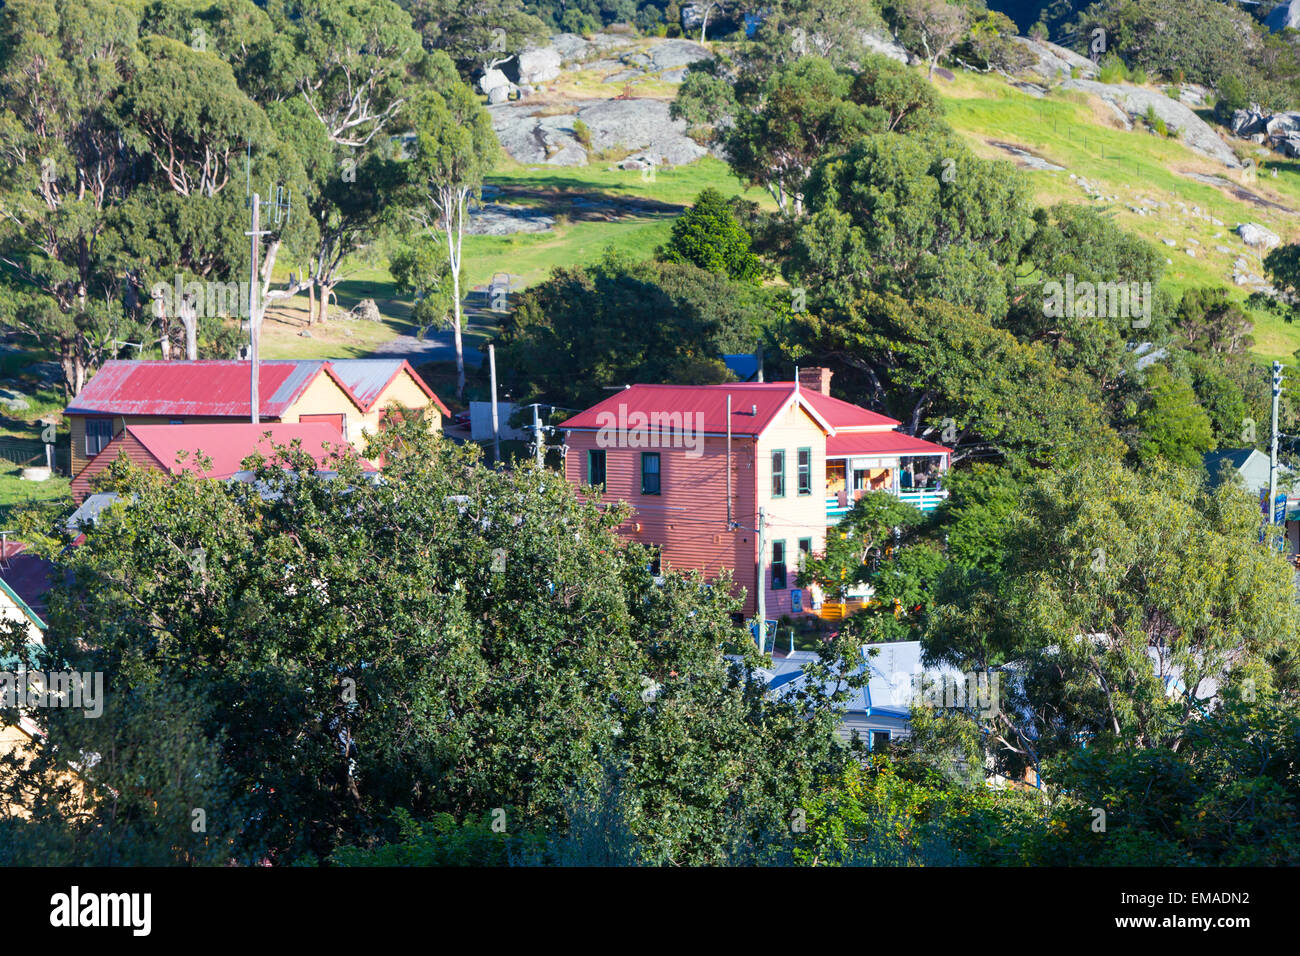 Central Tilba in its idyllic setting near Narooma in New South Wales, Australia - Stock Image